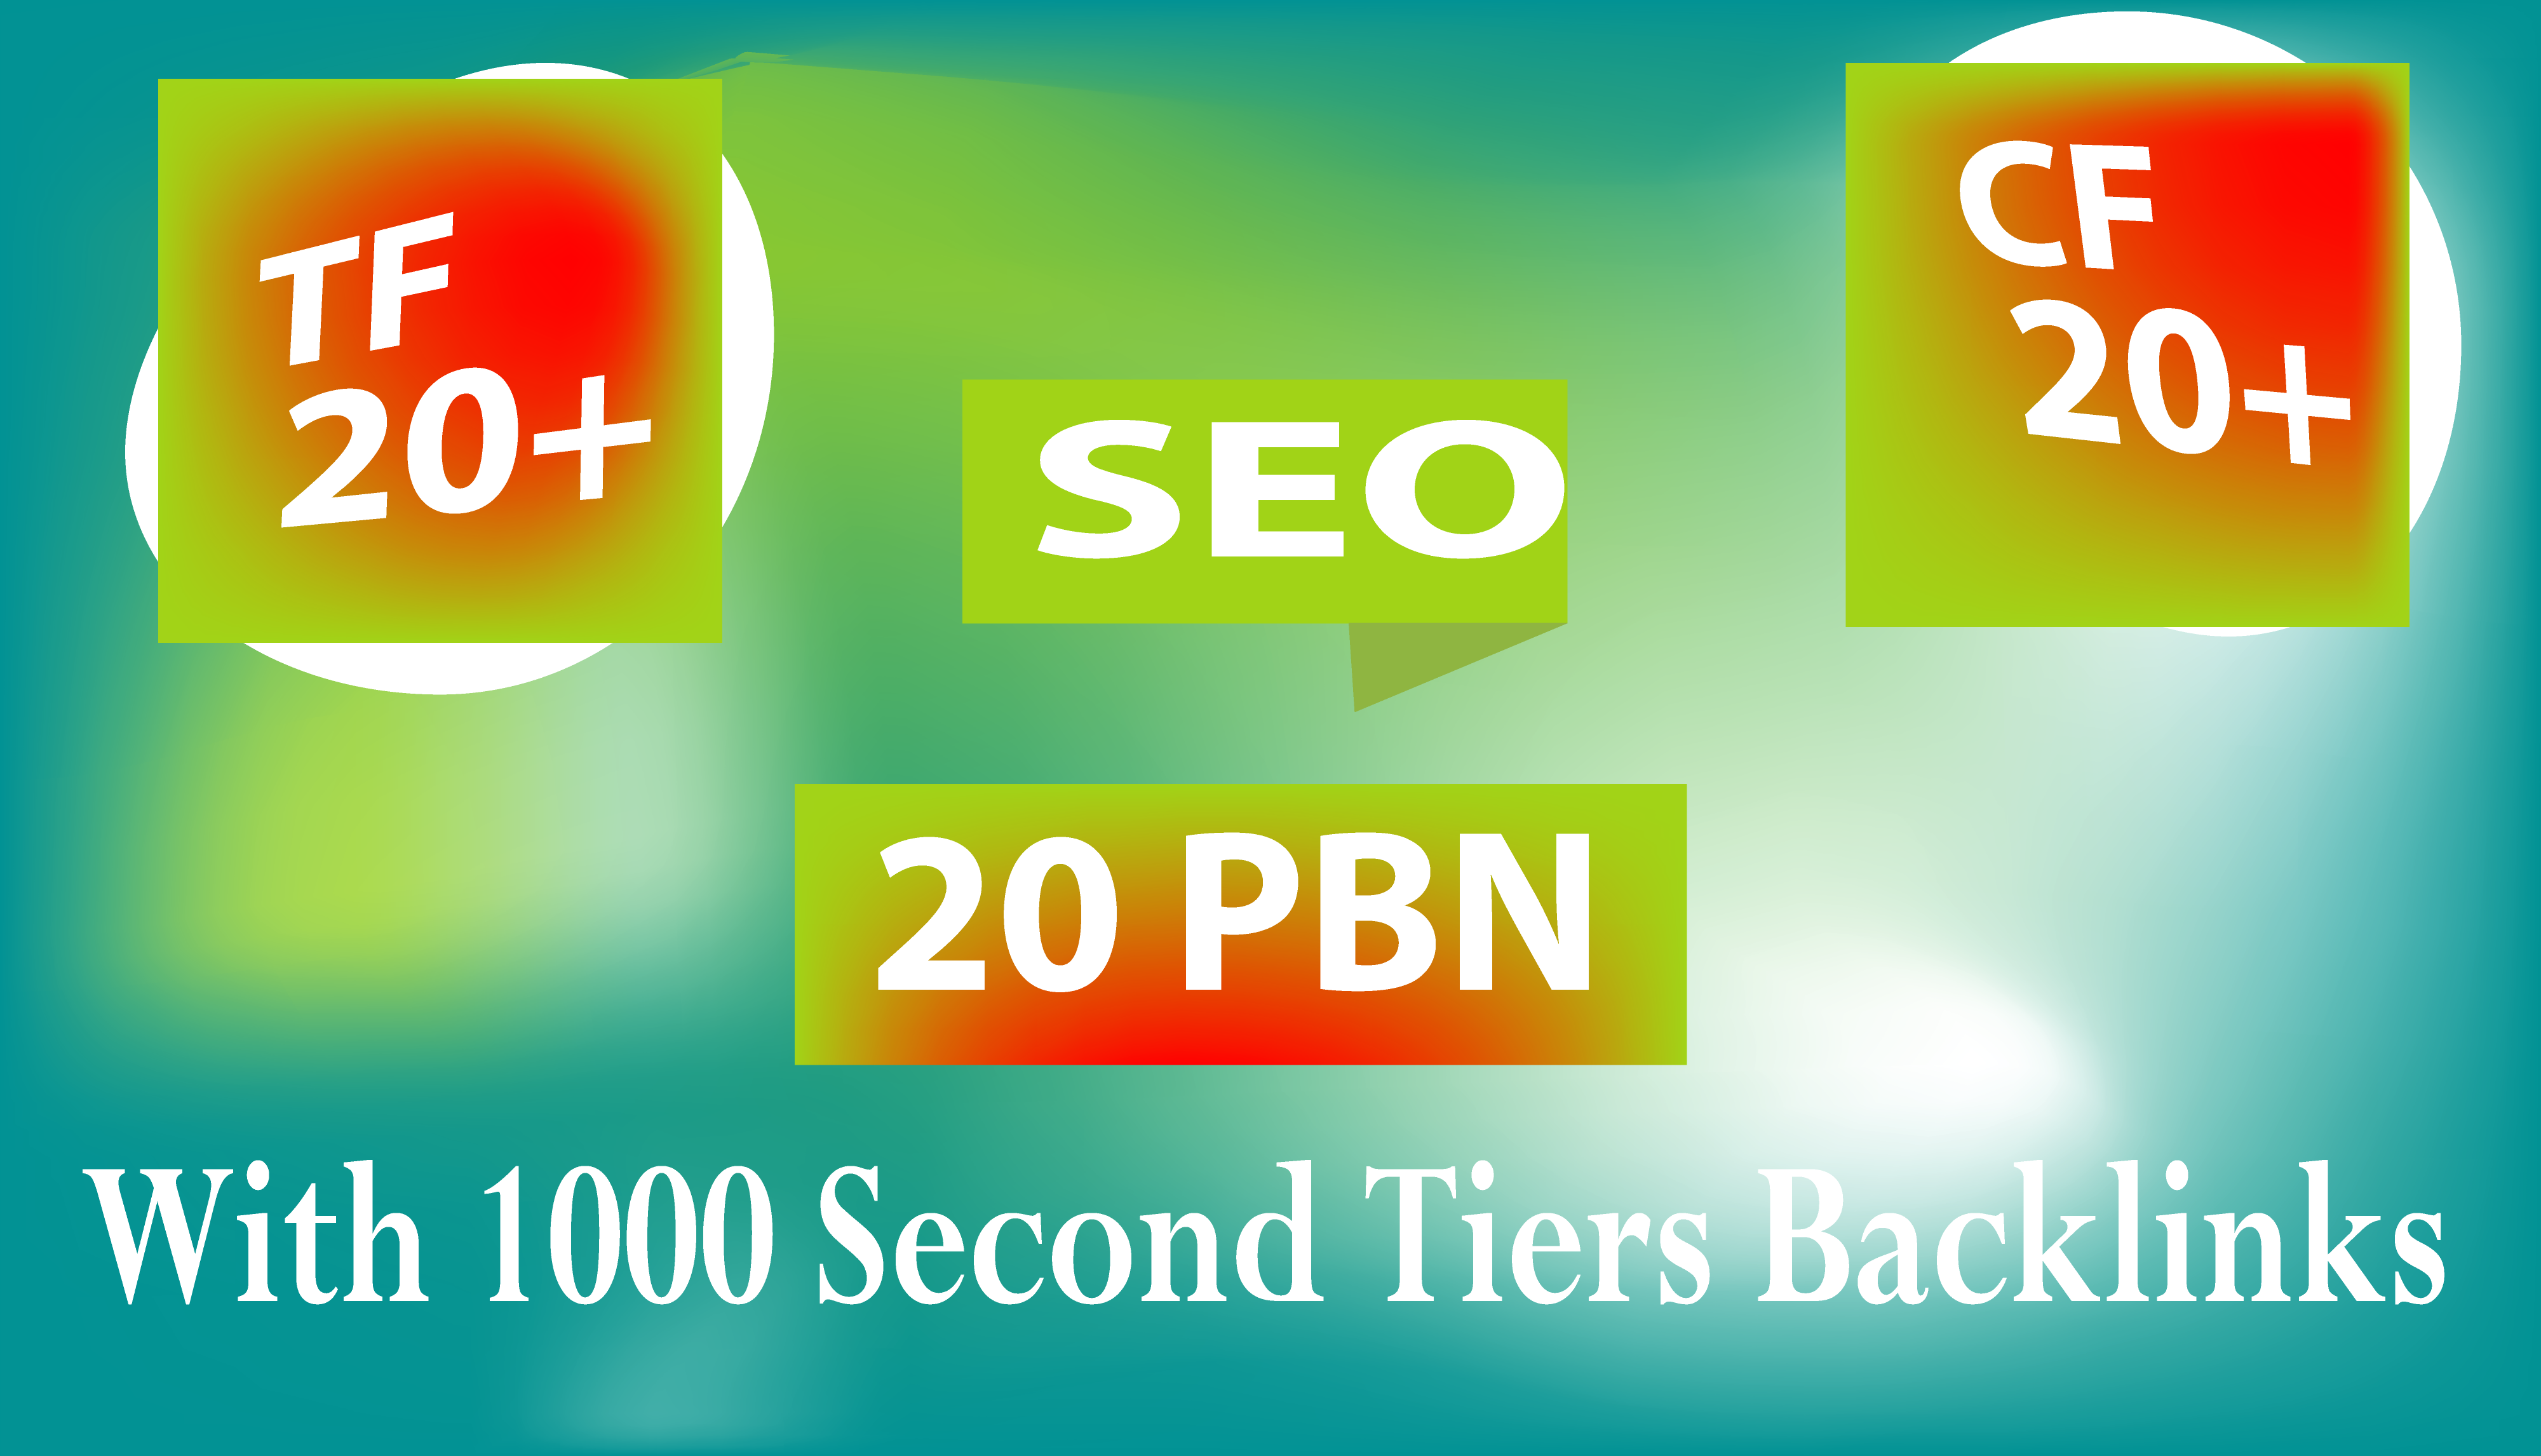 Build 20 Permanent Homepage PBN With 1000 2nd Tiers Backlinks